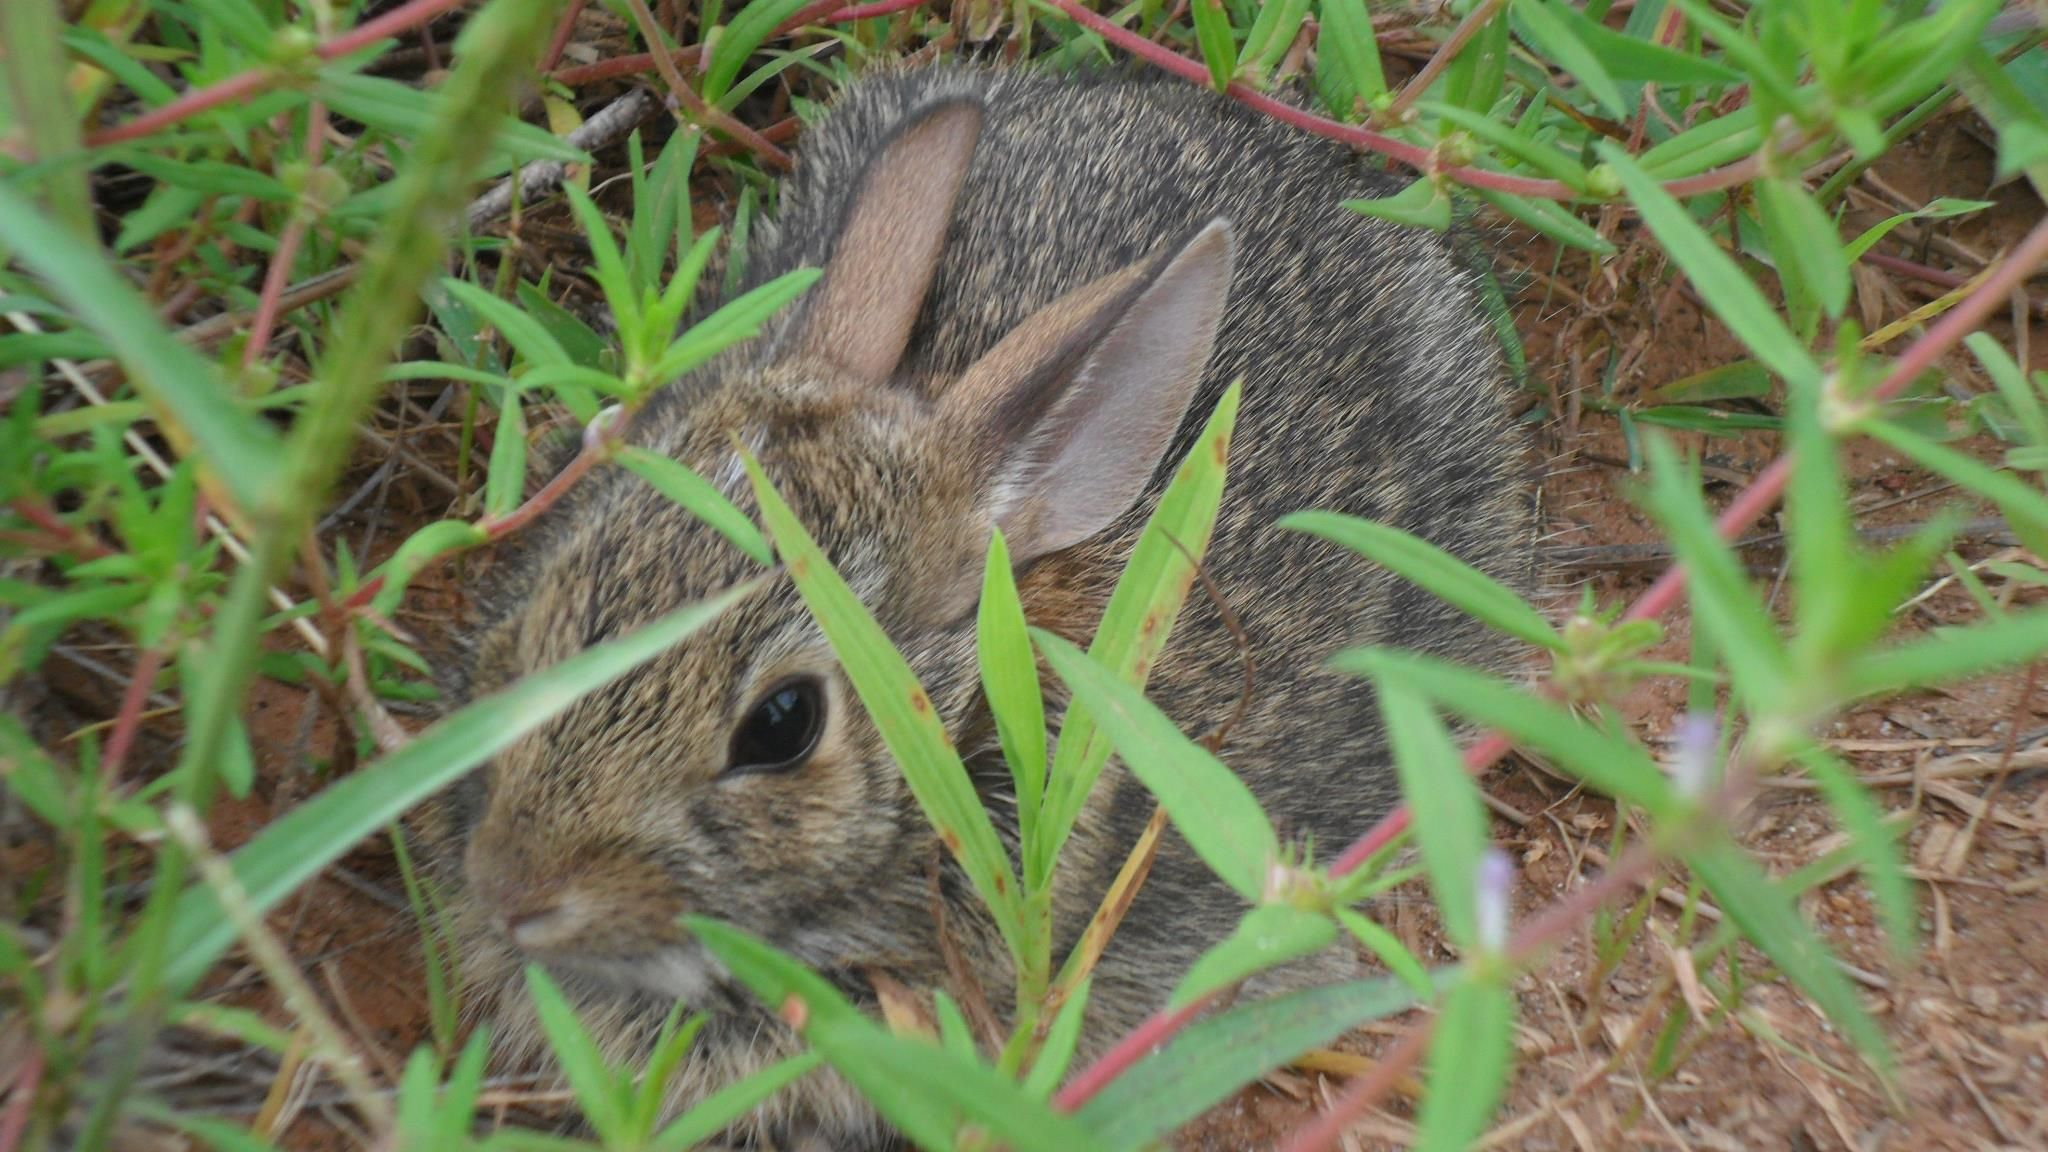 Baby Bunnies In Backyard - House of Things Wallpaper